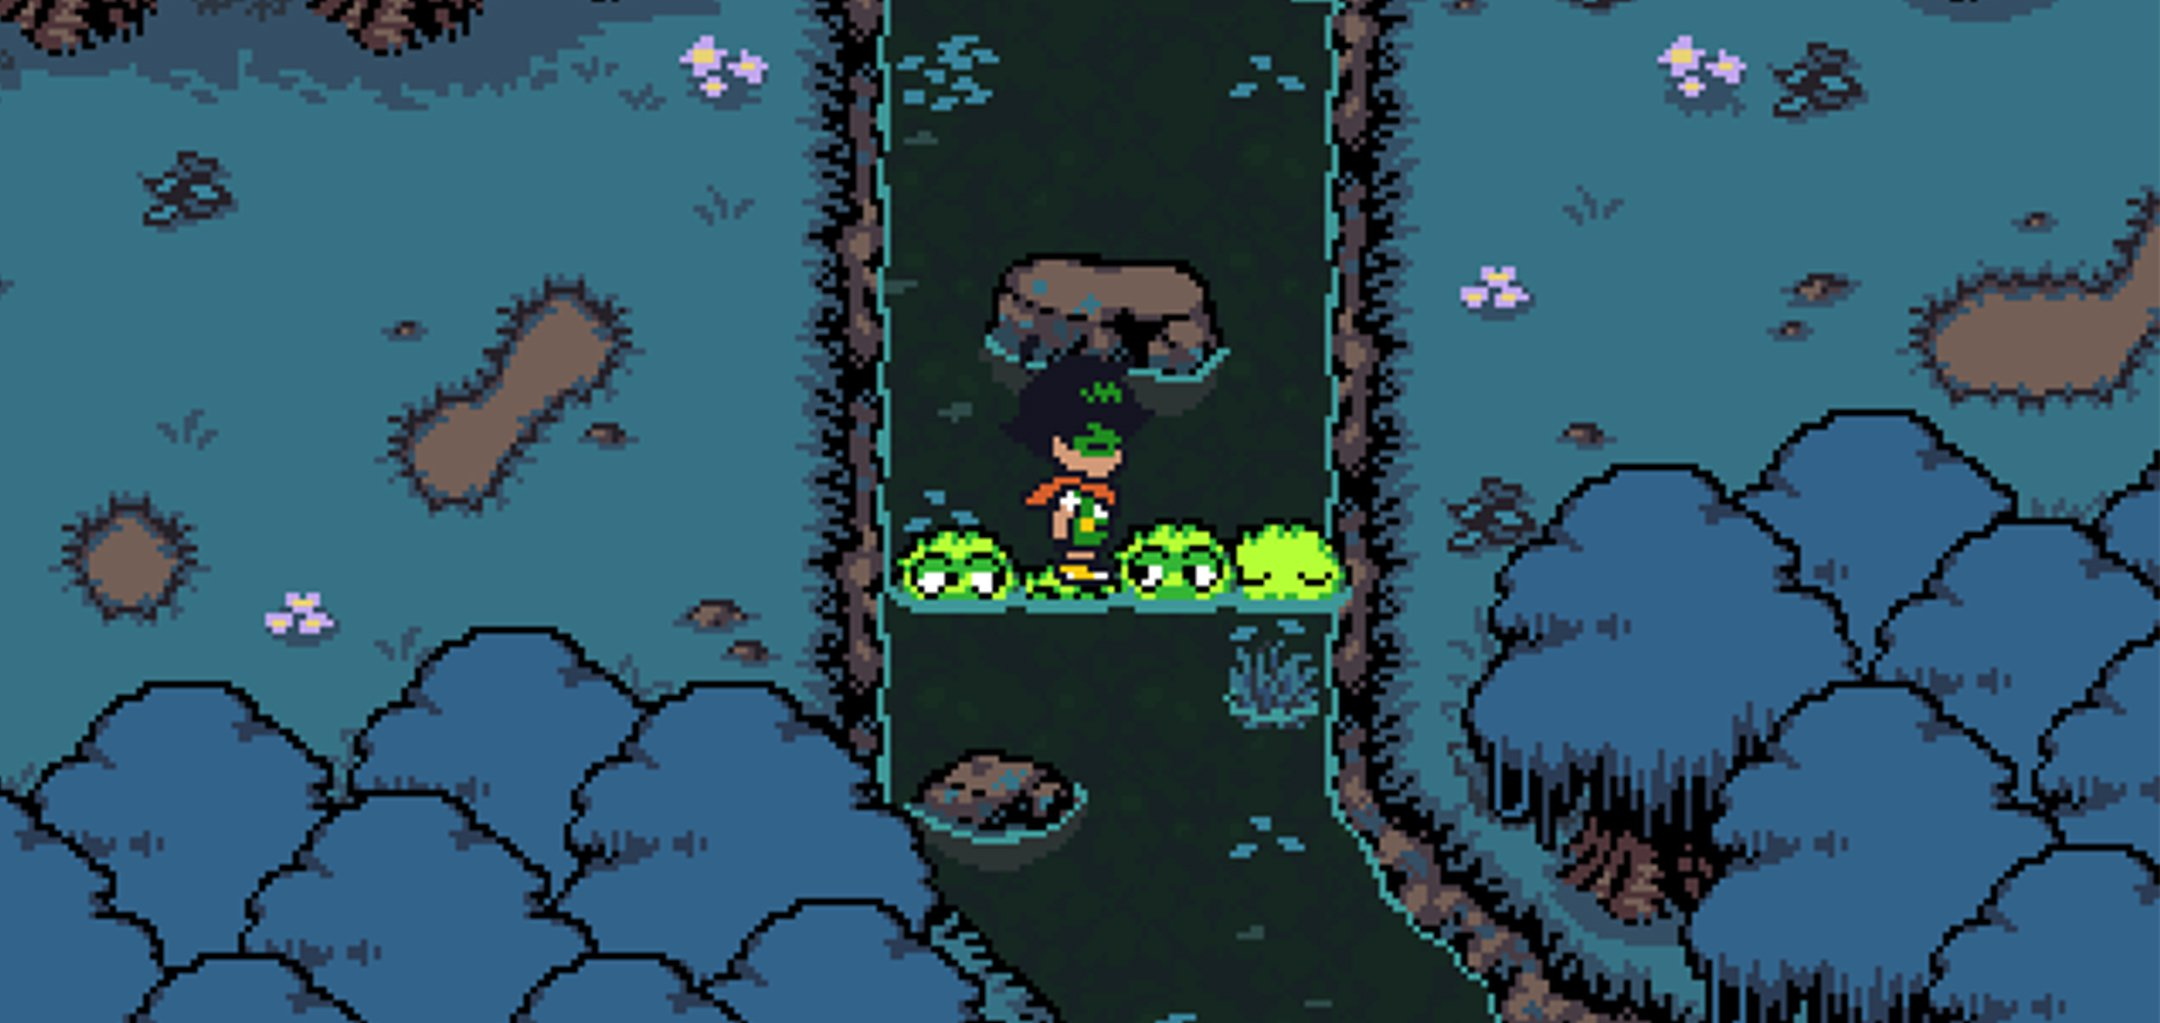 Protagonist crossing a river - screenshot from Spiritwell (TBC) david Chen